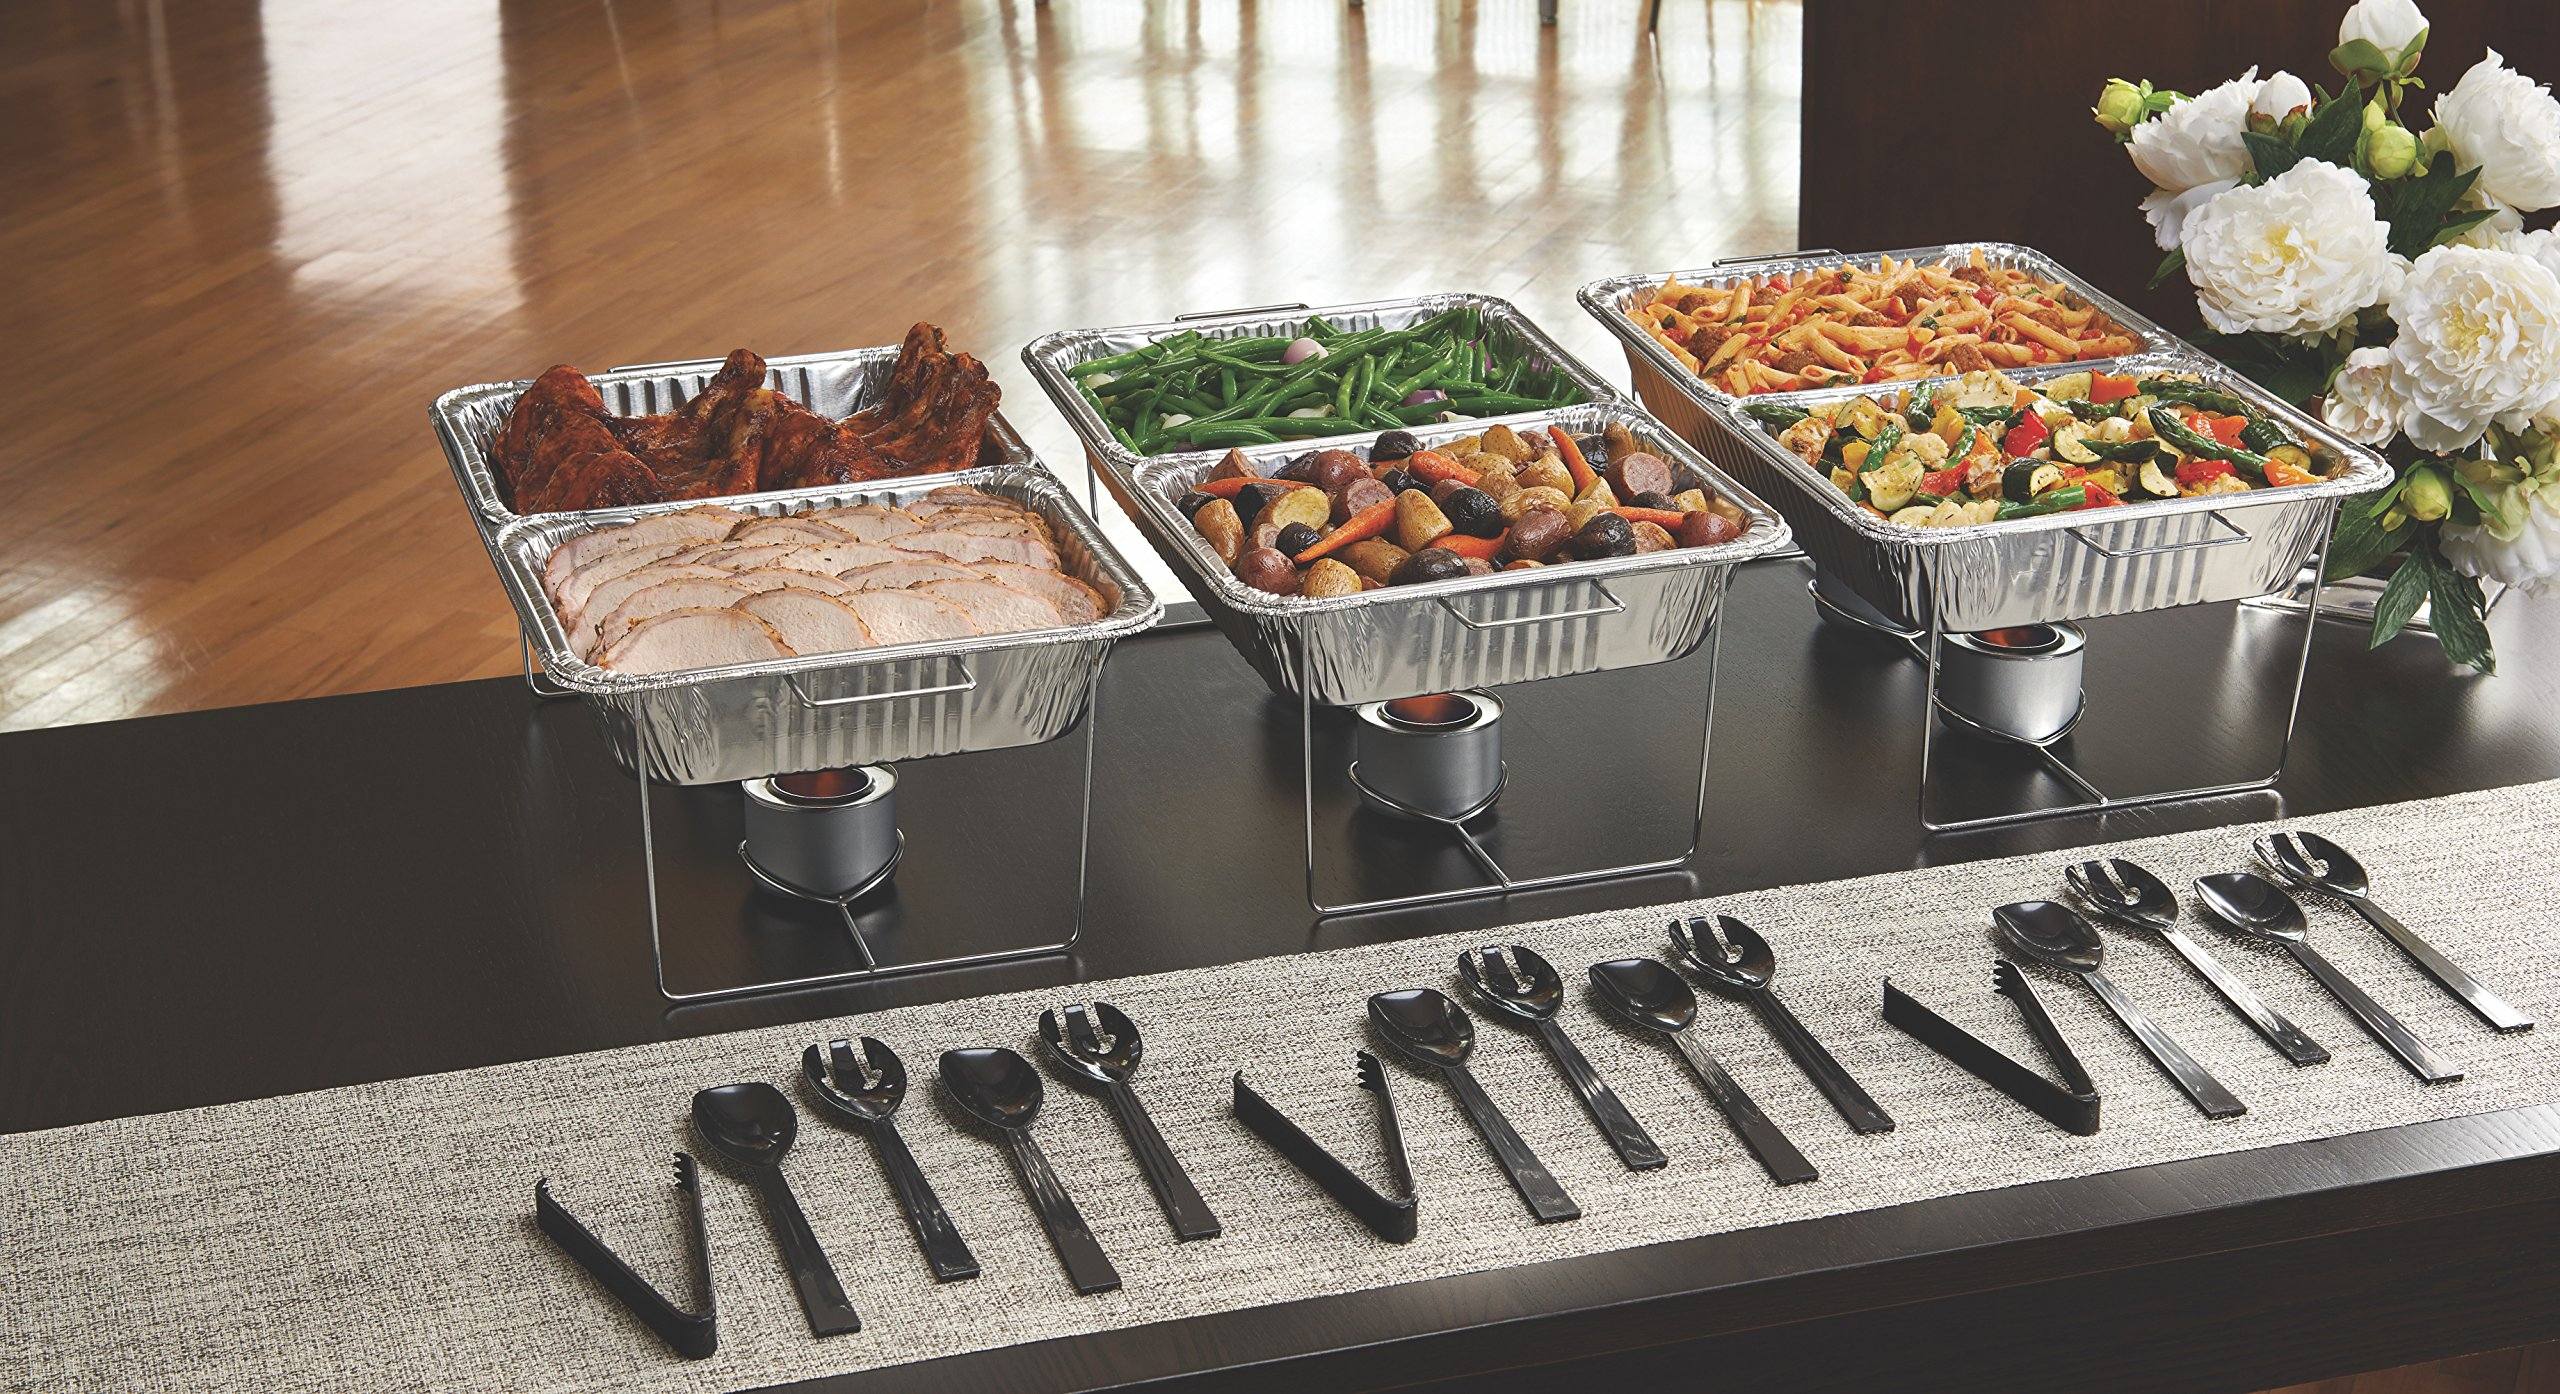 Party Essentials 33 Piece Party Serving Kit, Includes Chafing Kits and Serving Utensils by Party Essentials (Image #3)